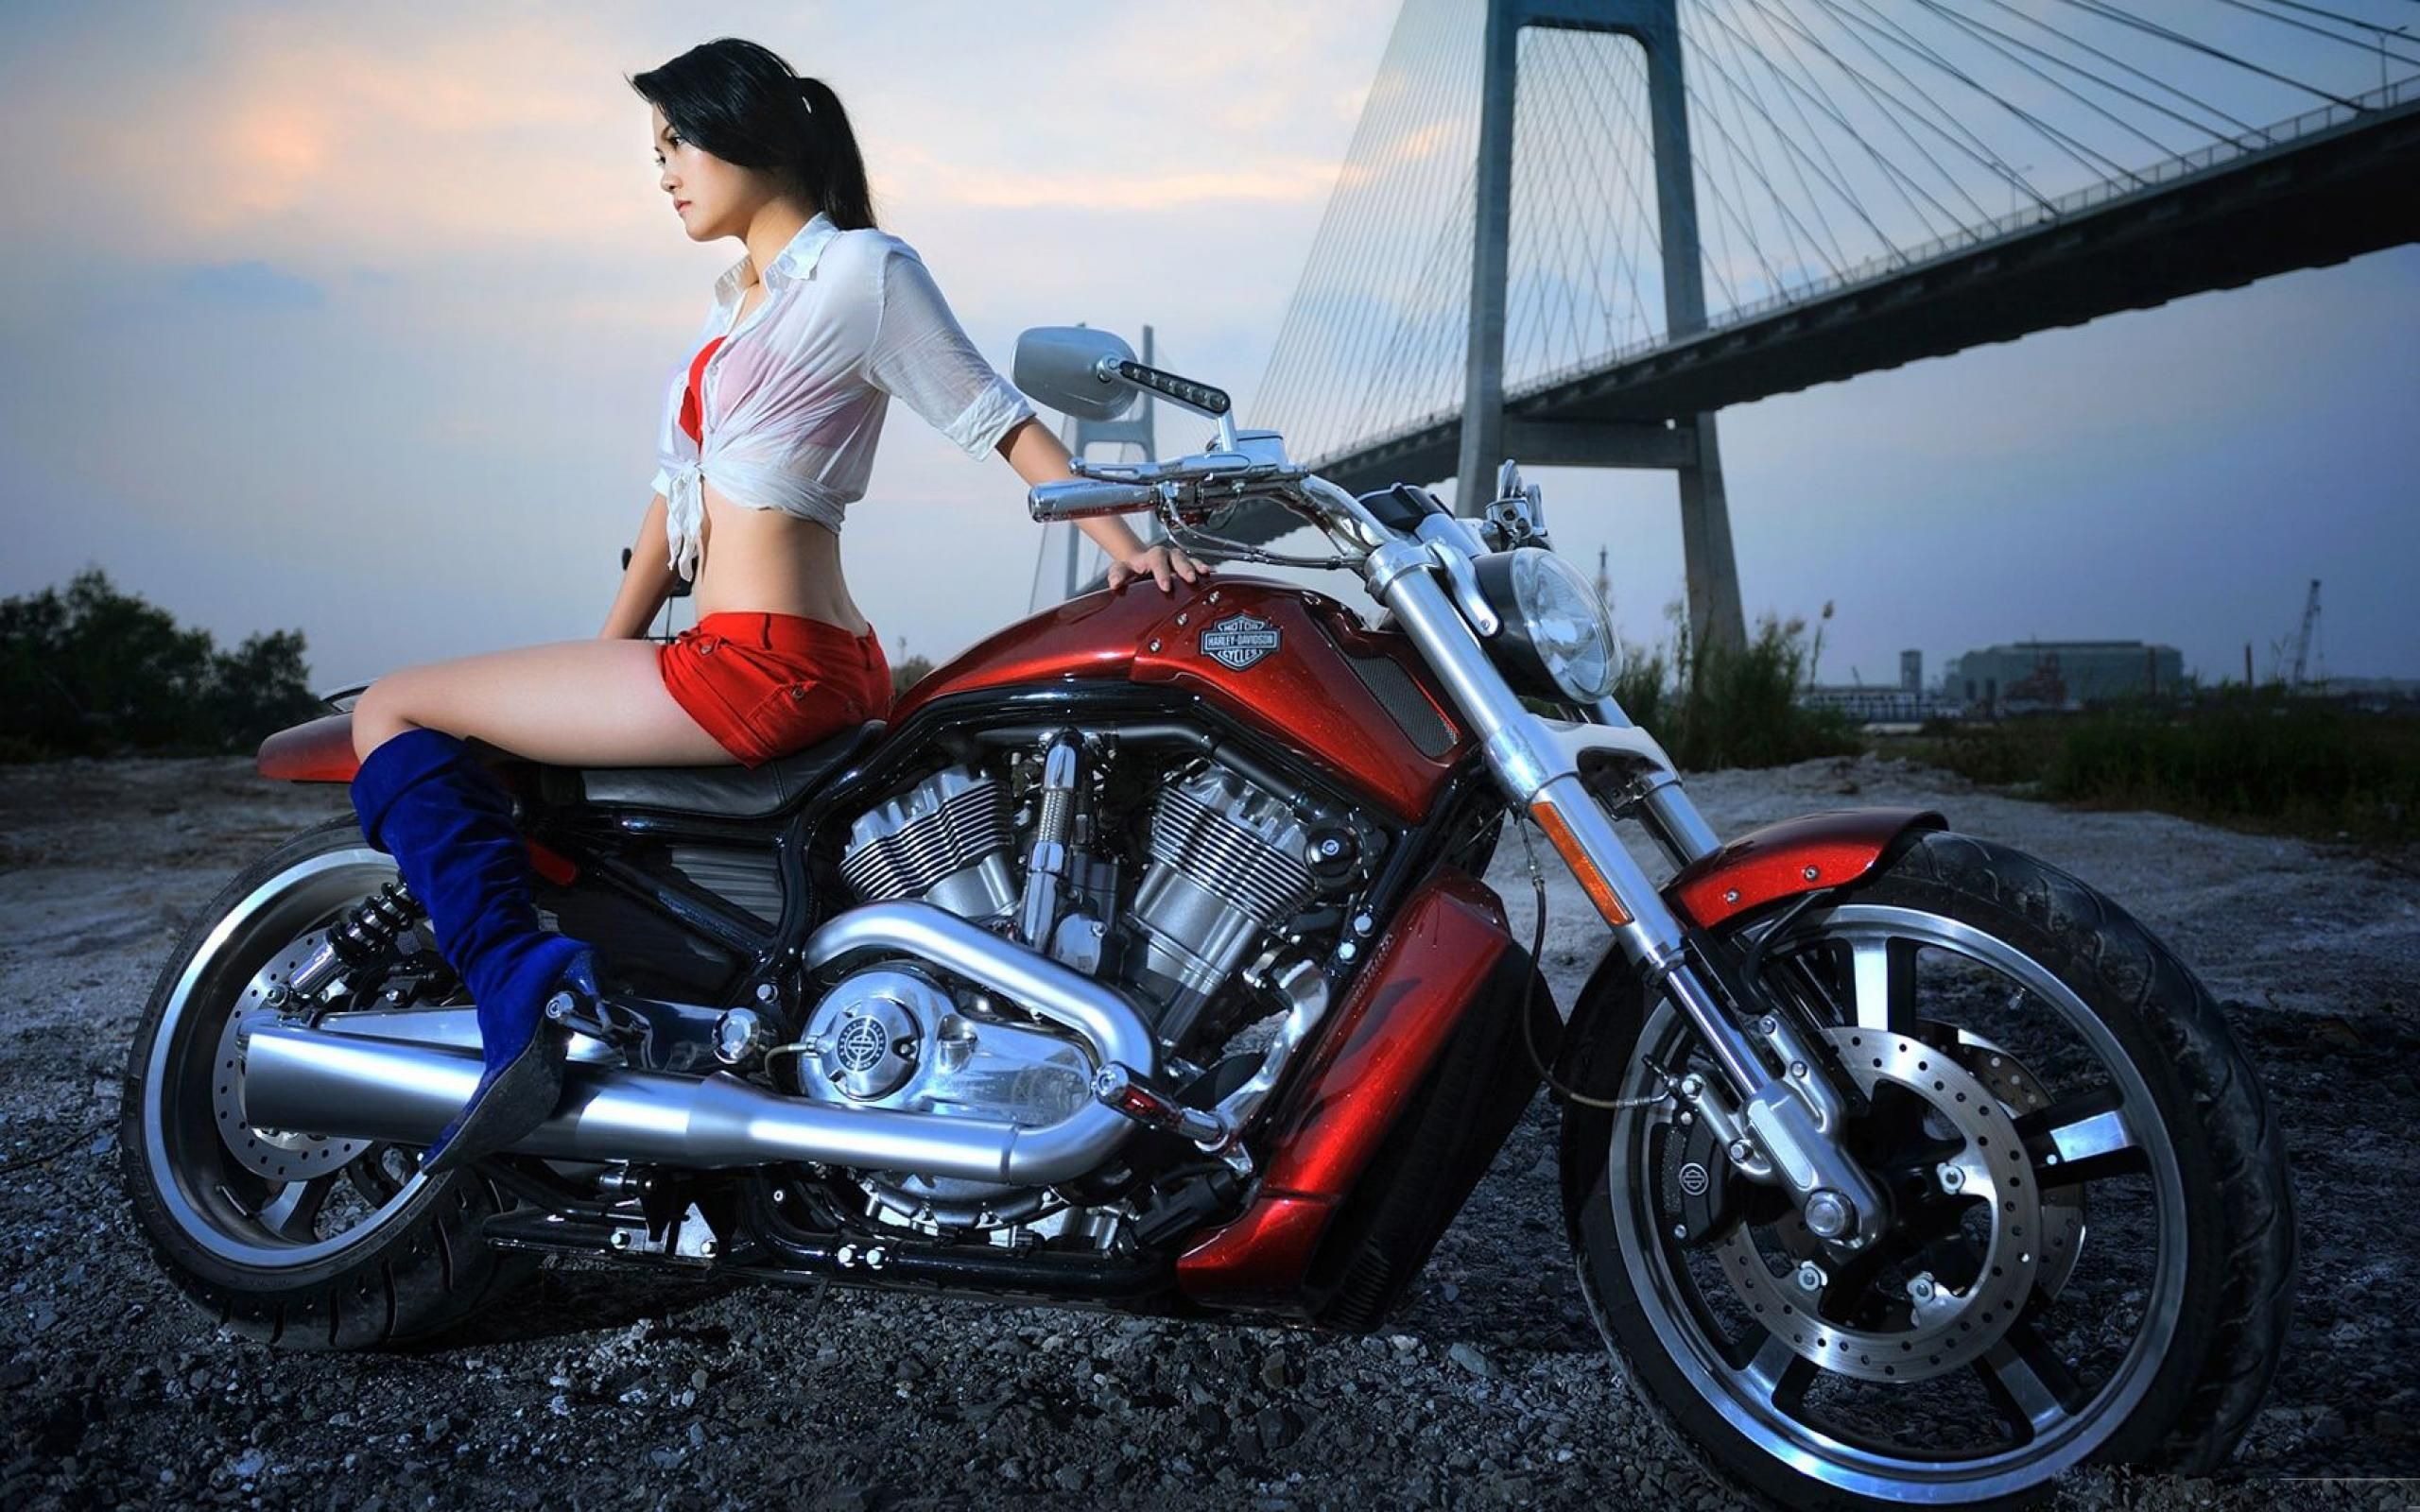 Hottest harley girls download wallpapers sexy girls music hottest harley girls download wallpapers sexy girls music harley davidson motorcycles best sciox Image collections